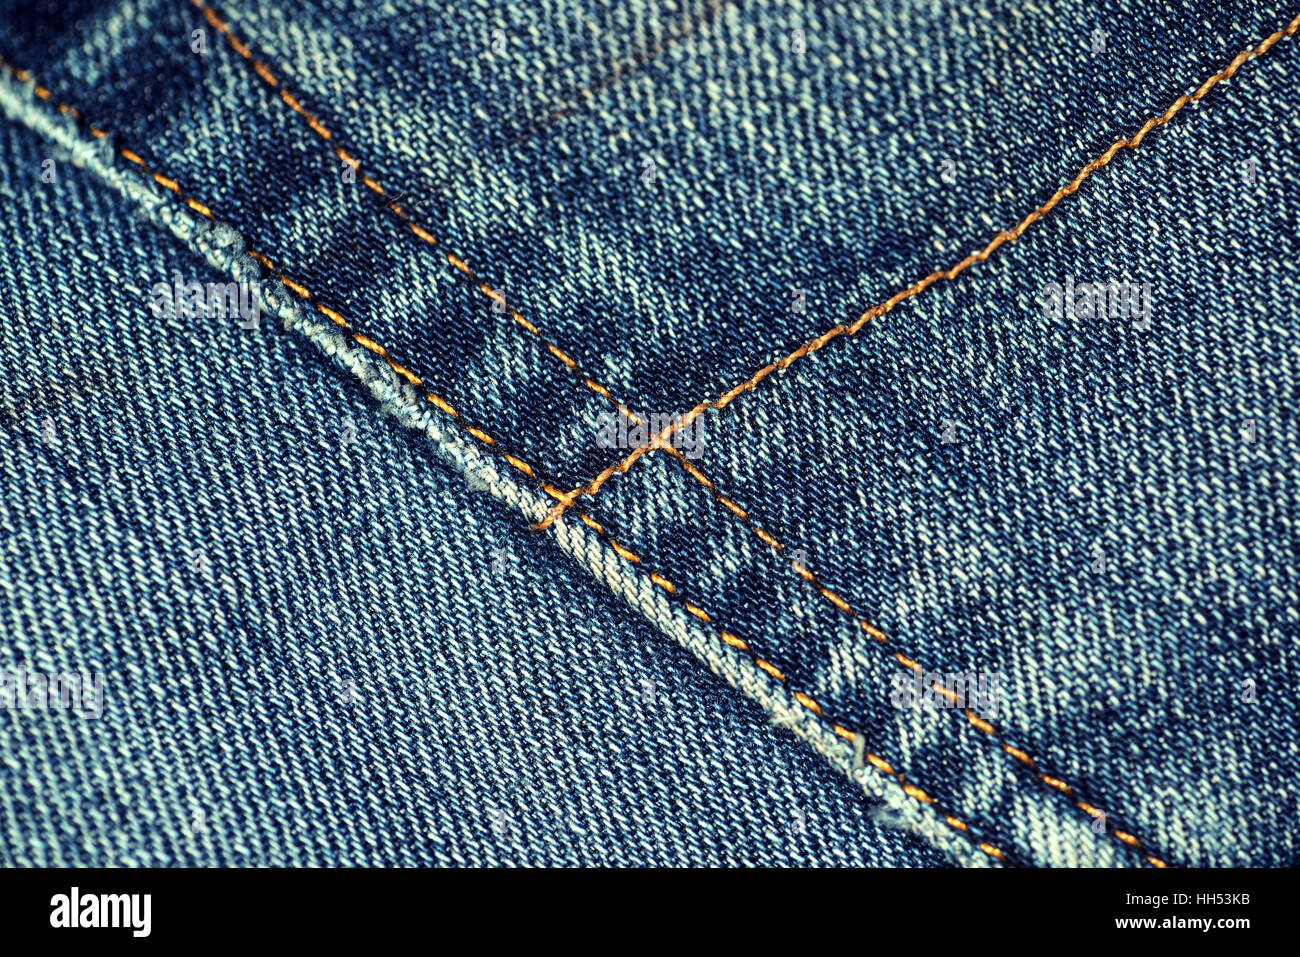 Macro closeup of yellow stitch on a pair of faded denim jeans with worn pocket edges. - Stock Image